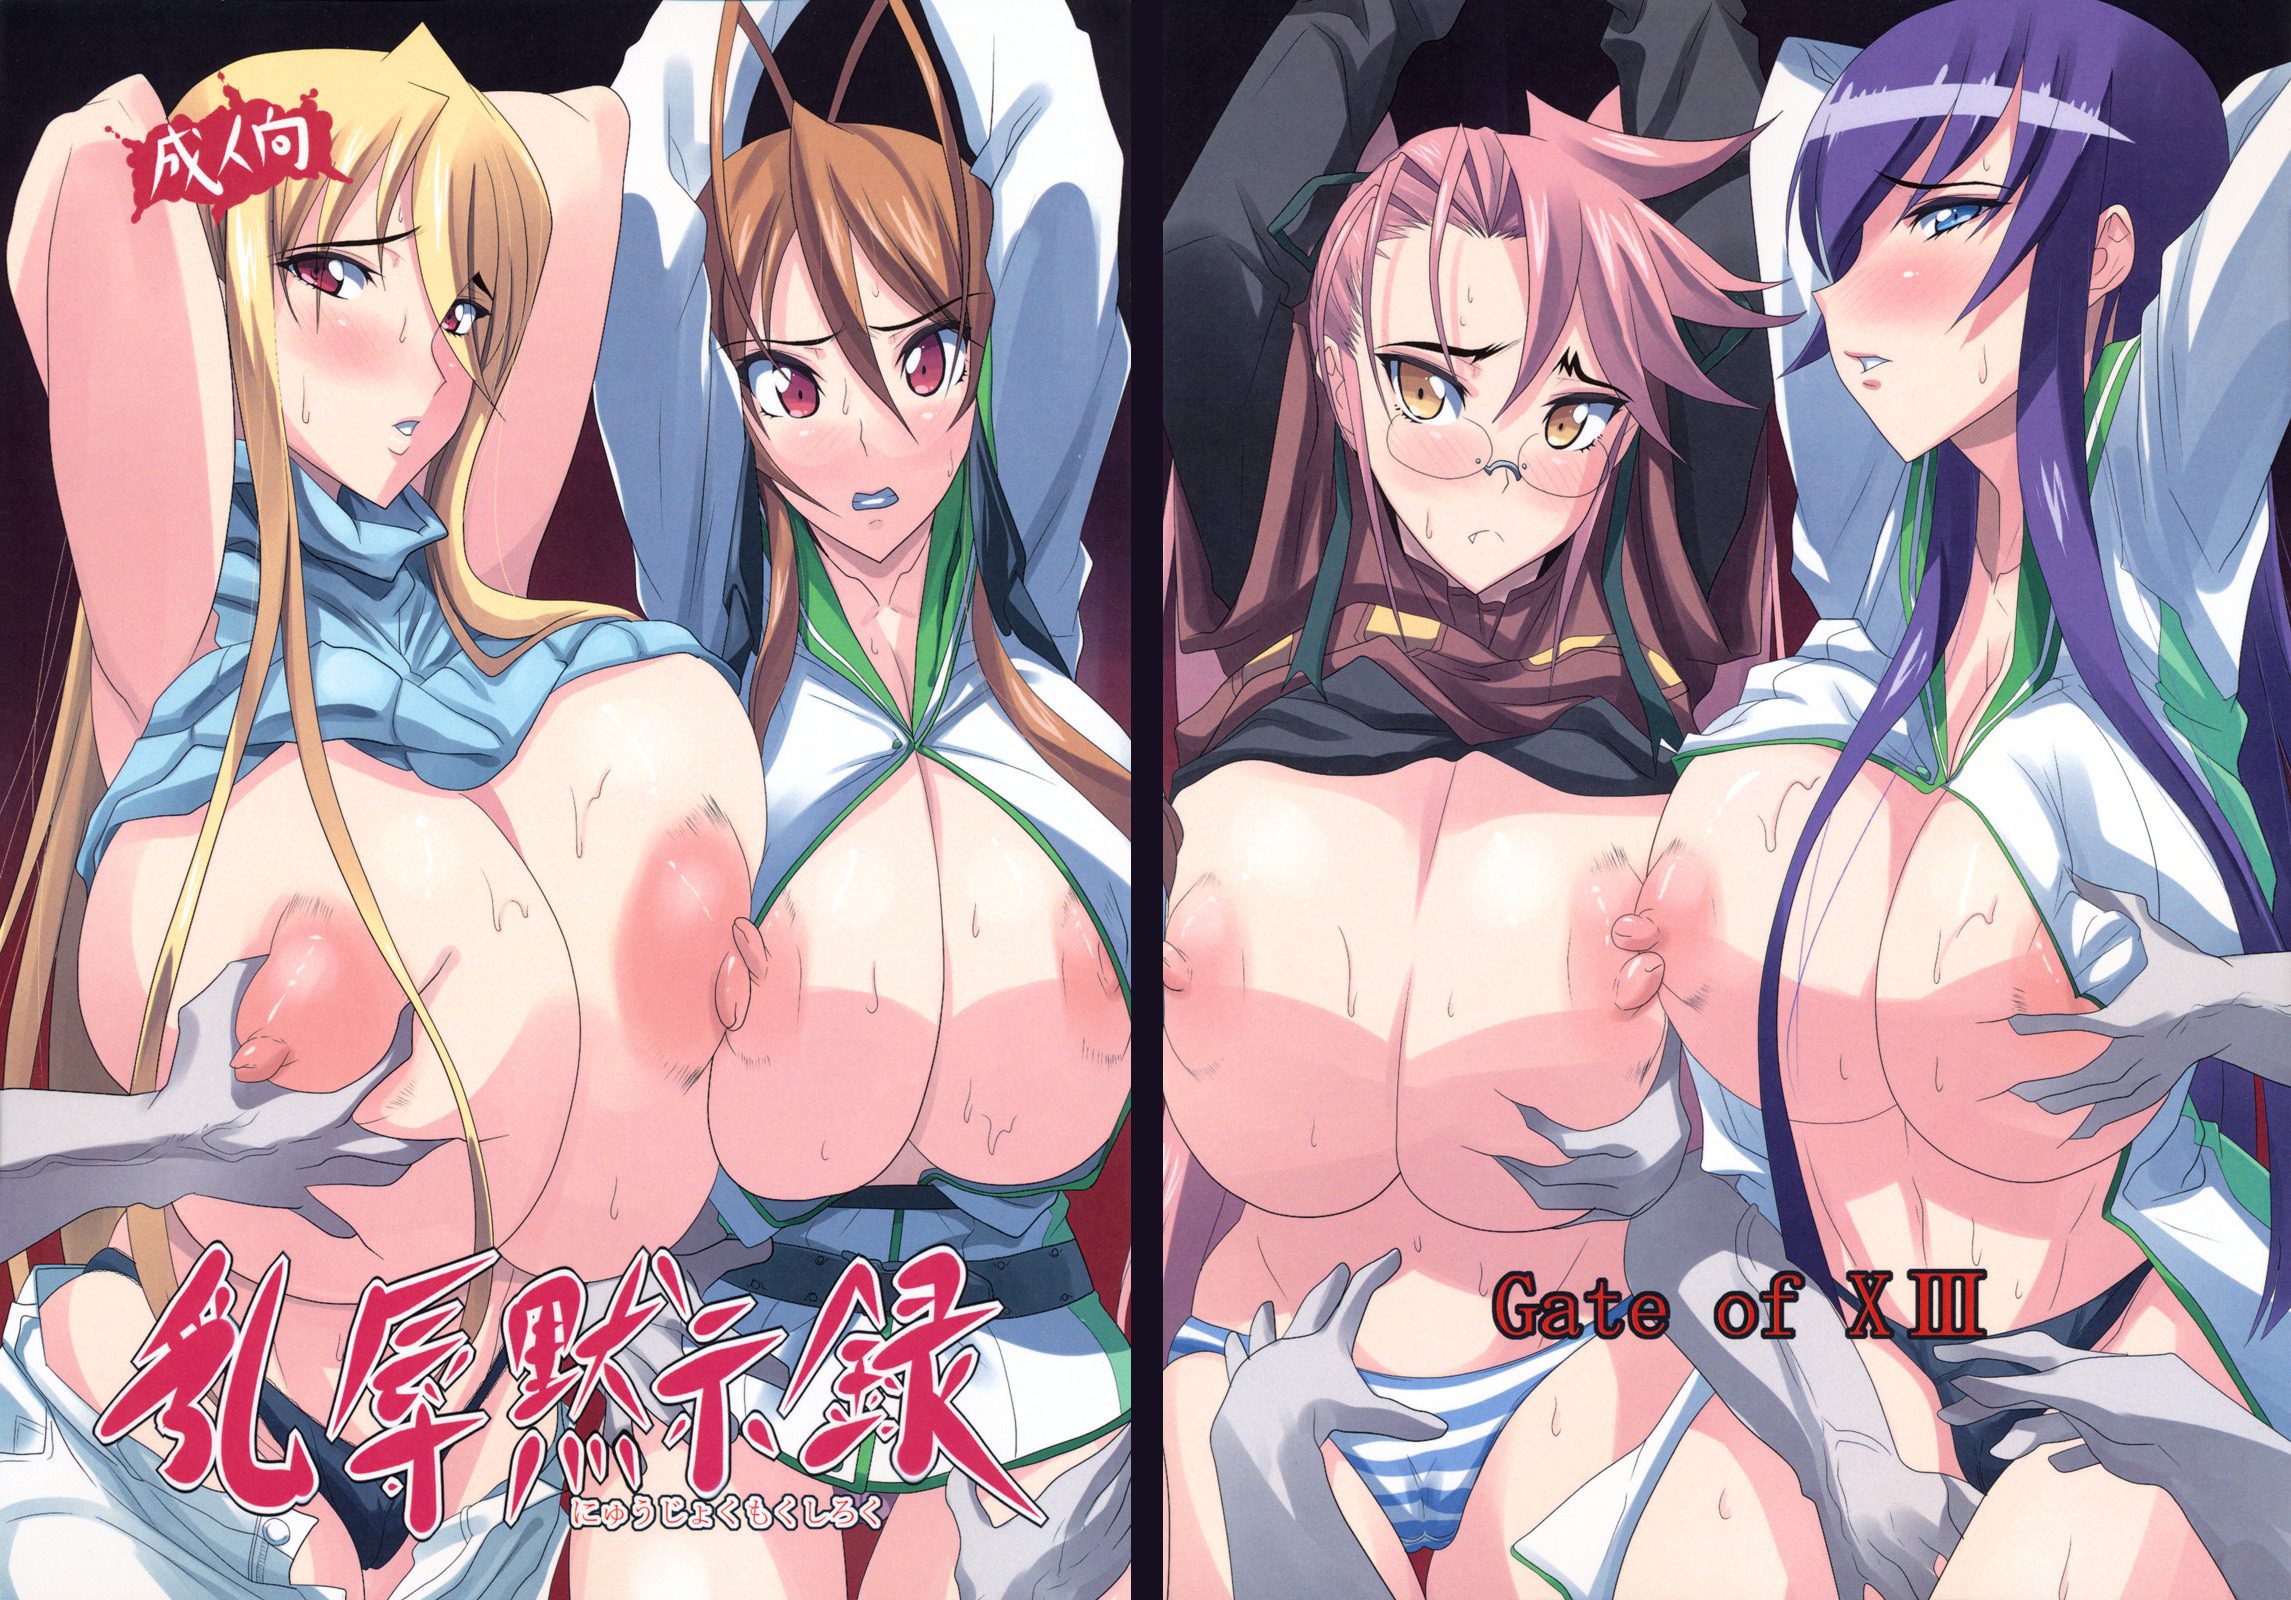 highschool of the girls dead naked Batman having sex with catwoman